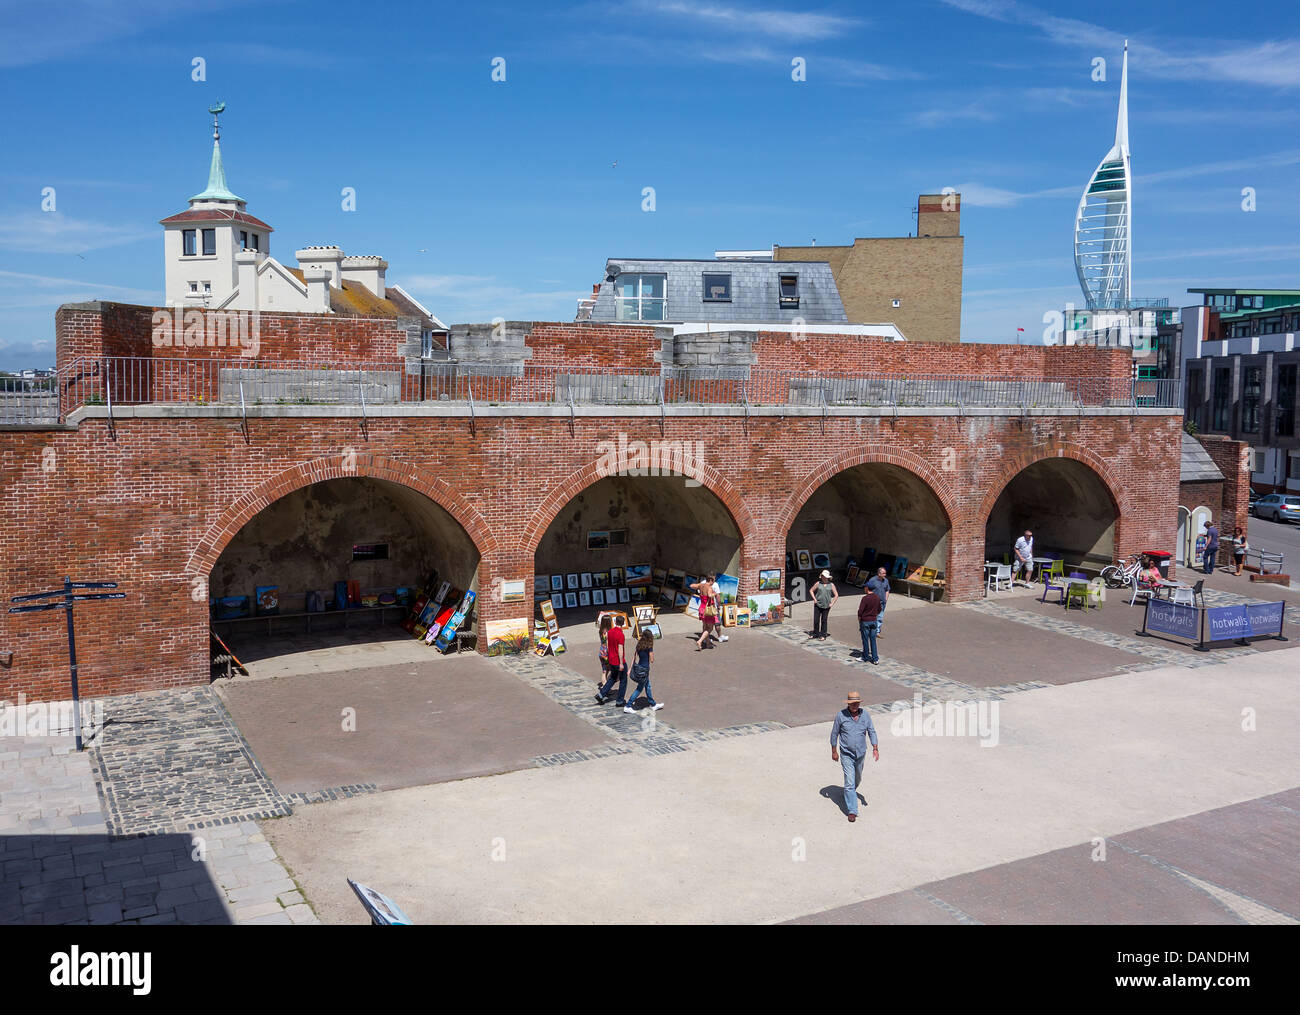 Fortifications Old Portsmouth - Tower House and Spinnaker Tower in Background - Stock Image